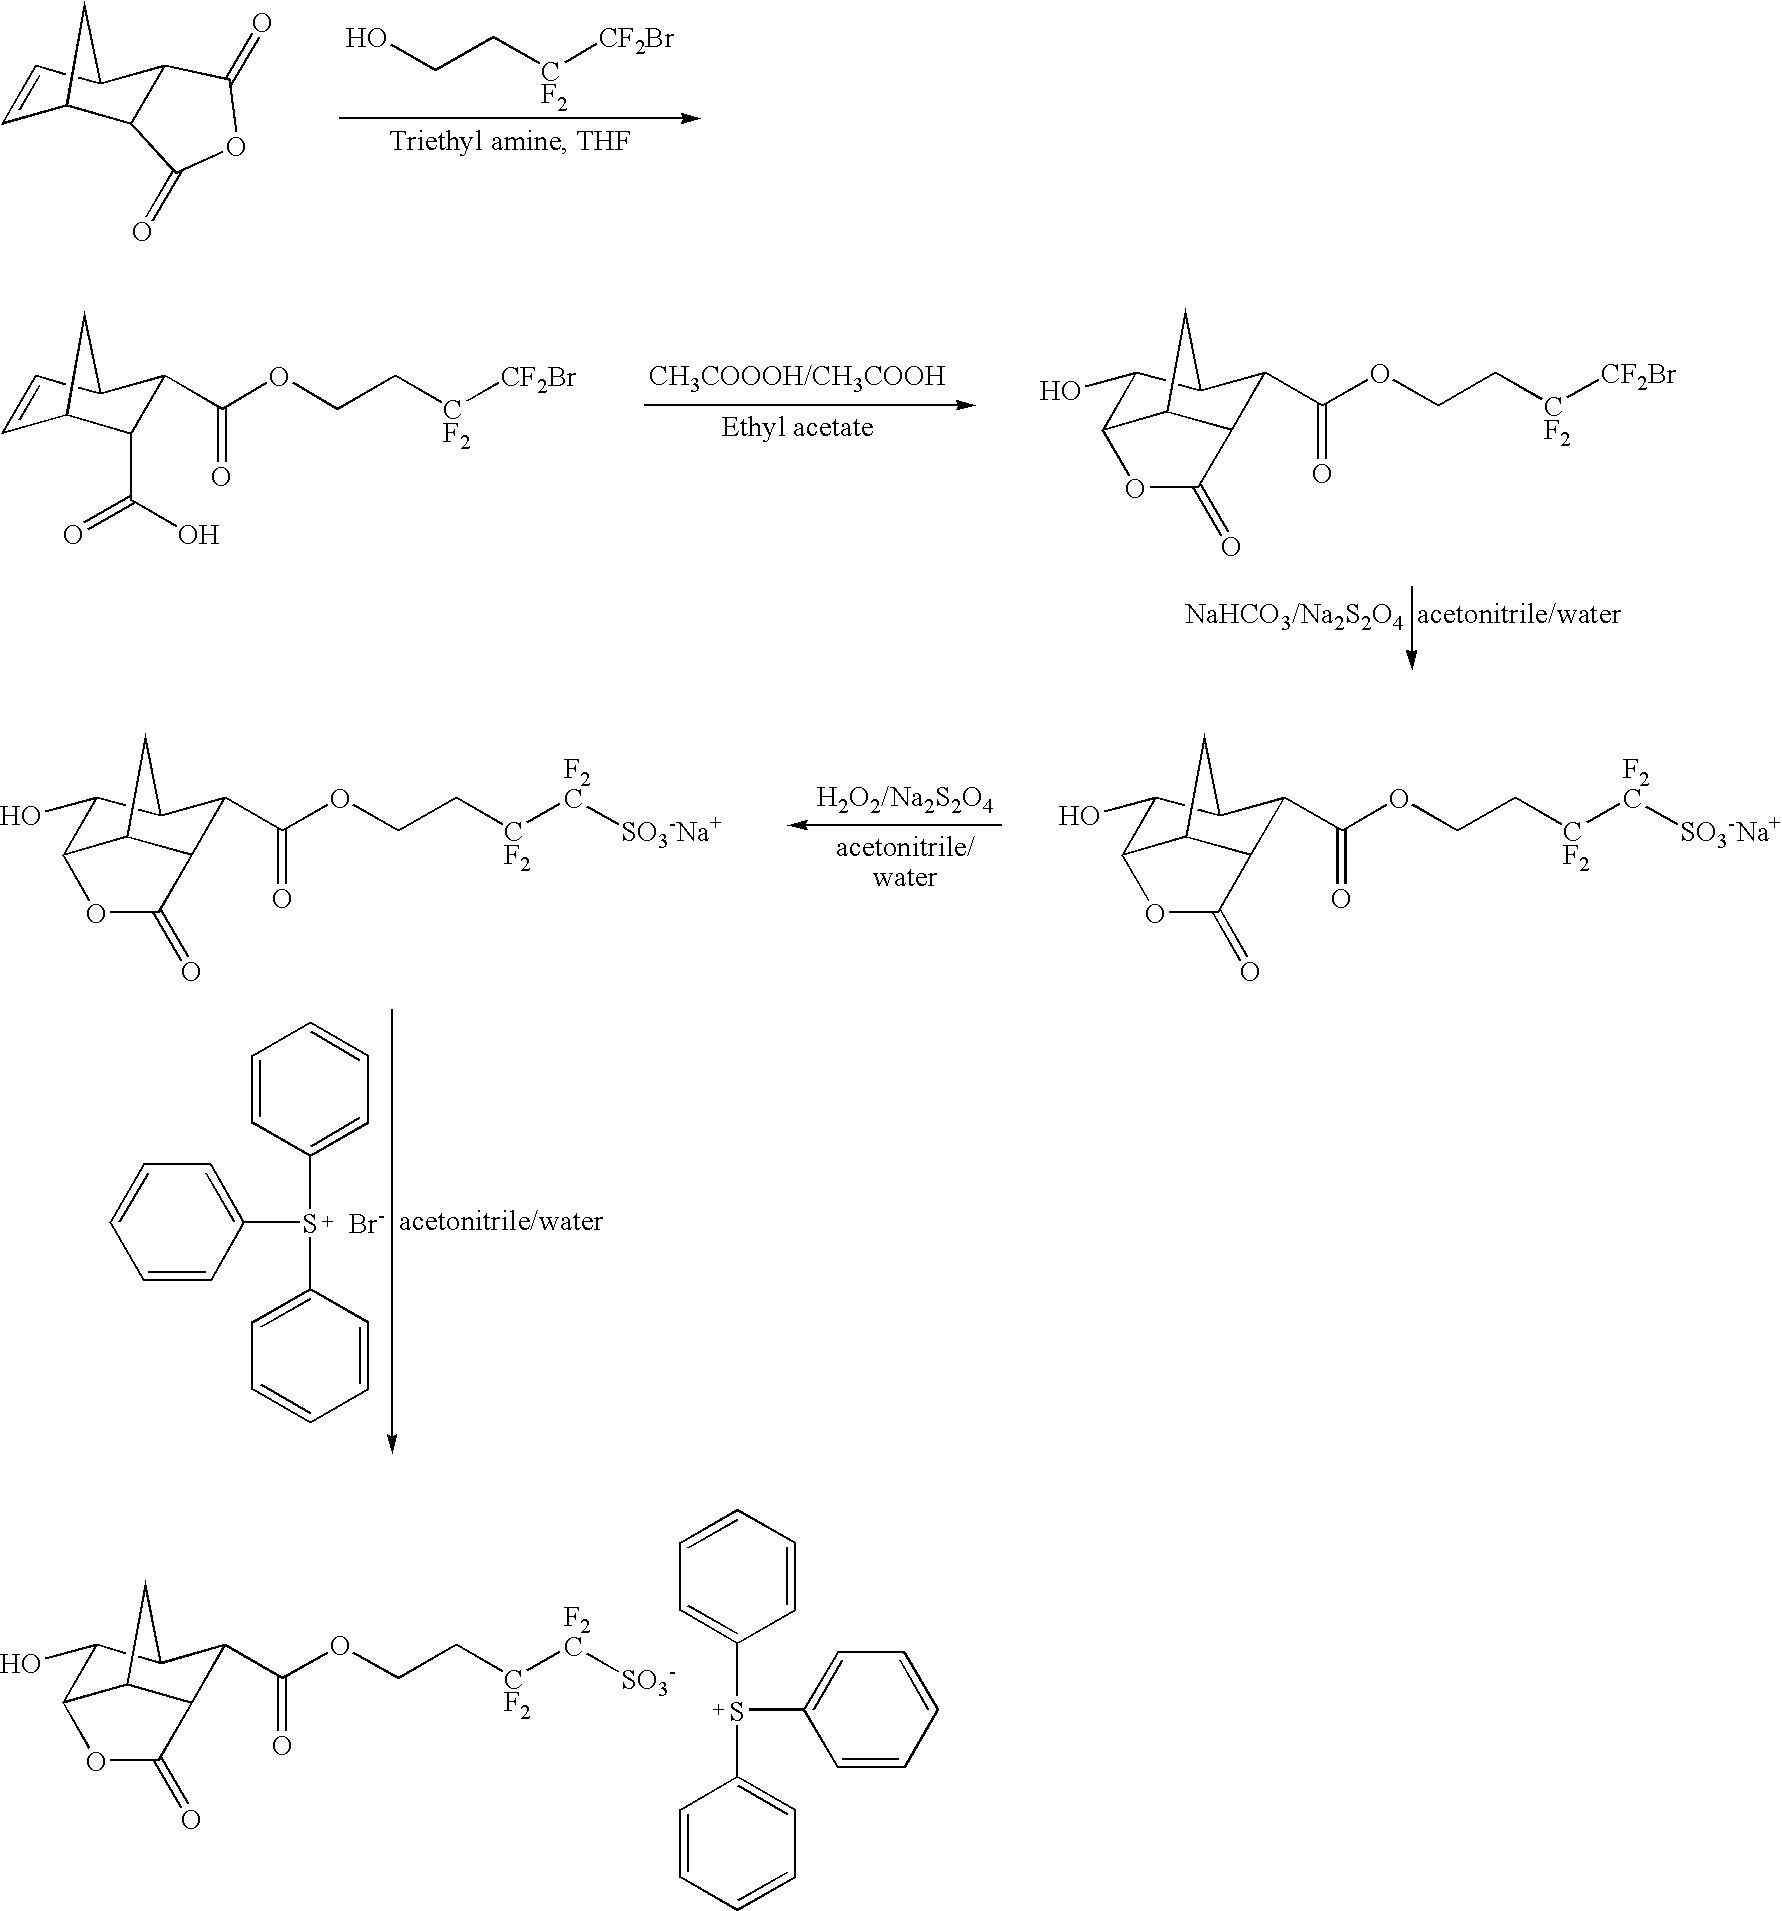 synthesis of cis norbornene endo dicarboxylic anhydride Cis-4-cyclohexene-1,2-dicarboxylic anhydride: formula: c 8 h 8 o additional names: cis-1,2,3,6-tetrahydrophthalic anhydride: cis-4-cyclohexene-1,2-dicarboxylic.